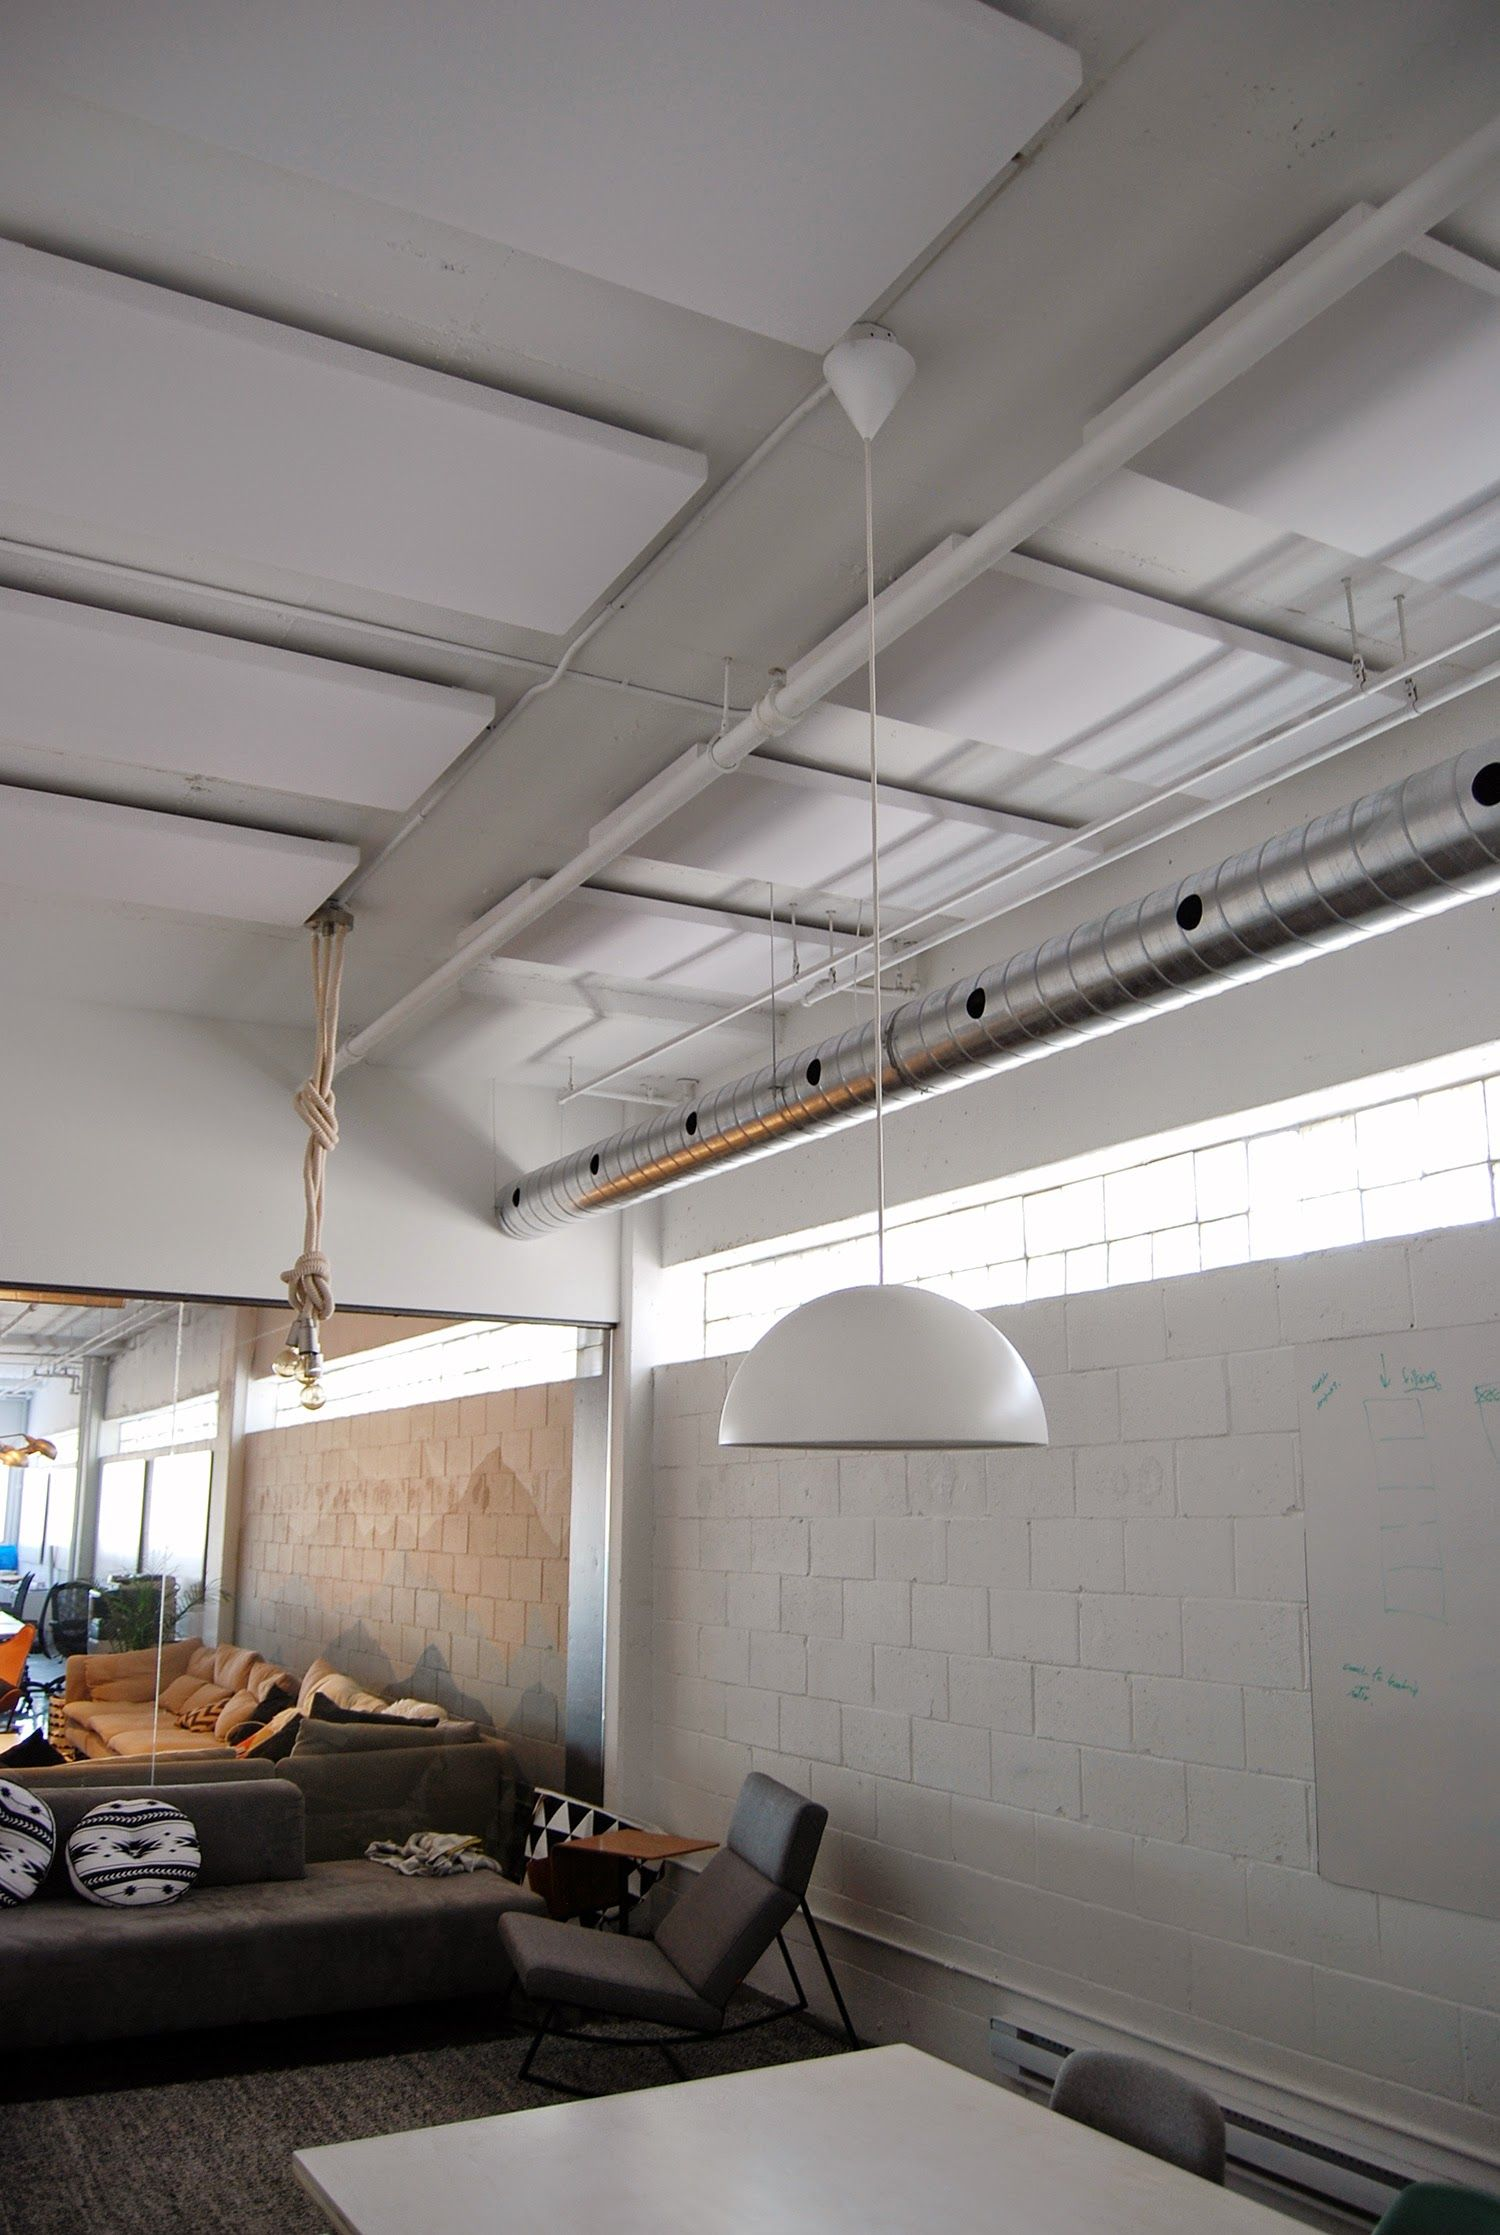 acoustic x ceilings mineral of suspended fiber photo ceiling tile europe ultima armstrong